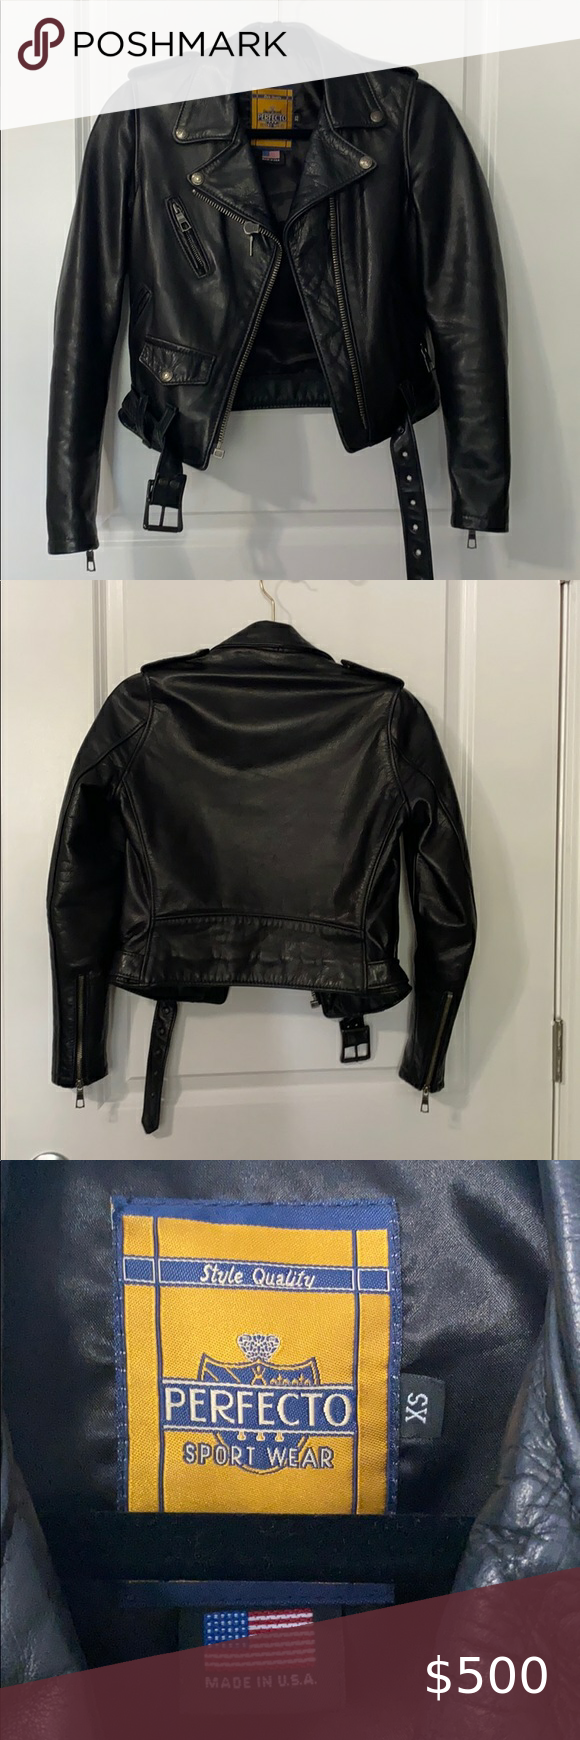 Schott Nyc Leather Jacket Schott Genuine Leather Jacket Runs Small Feel Free To Message For Questions Or More Leather Jacket Jackets Genuine Leather Jackets [ 1740 x 580 Pixel ]